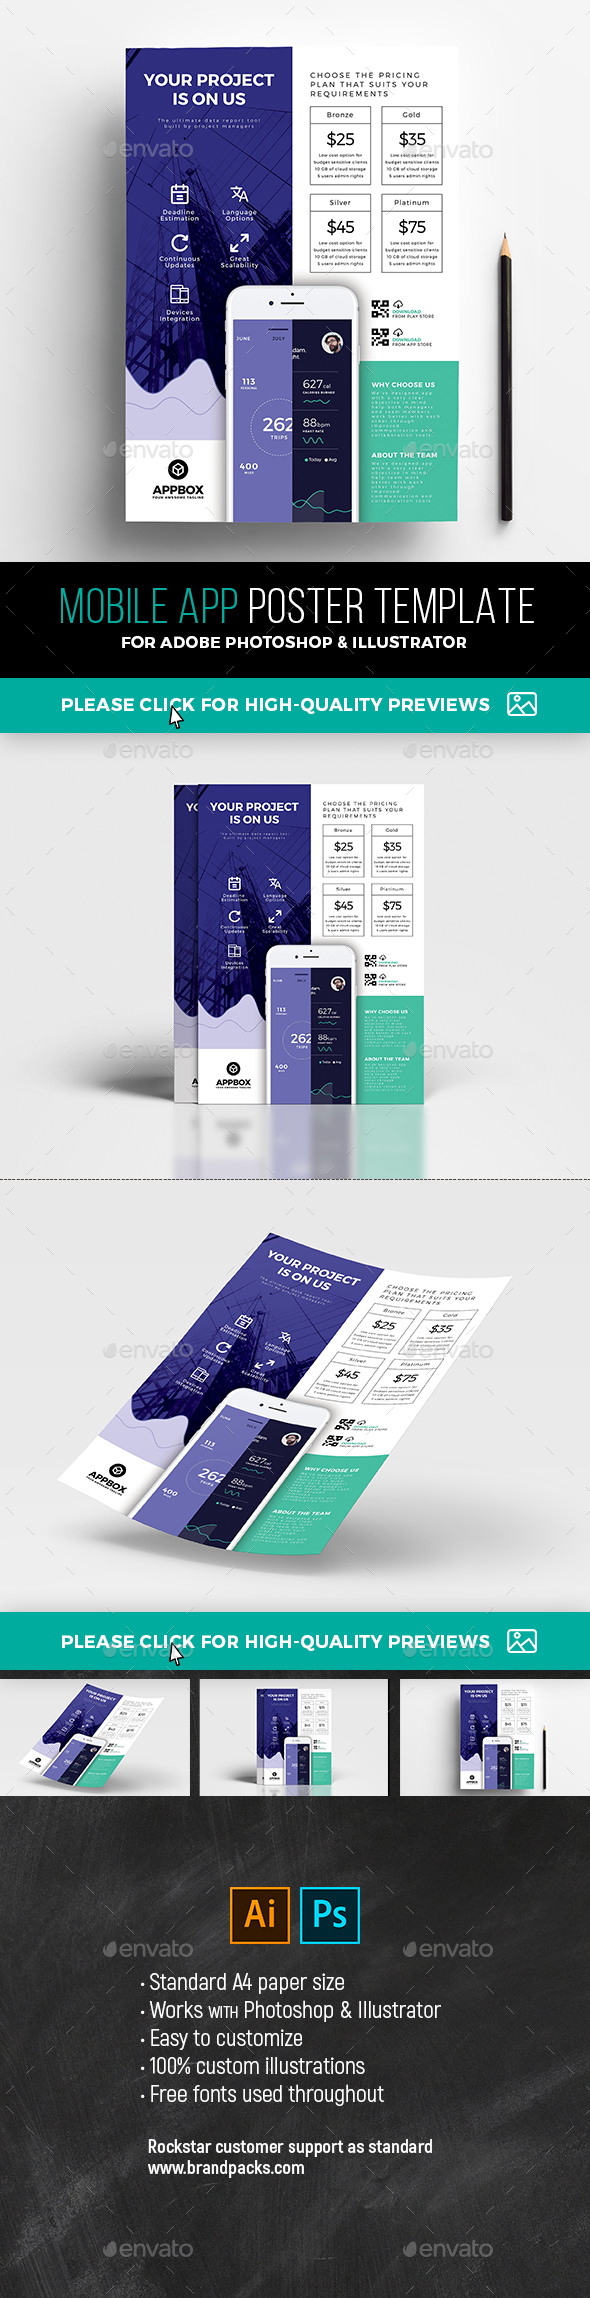 A4 Mobile App Poster Template - Corporate Flyers